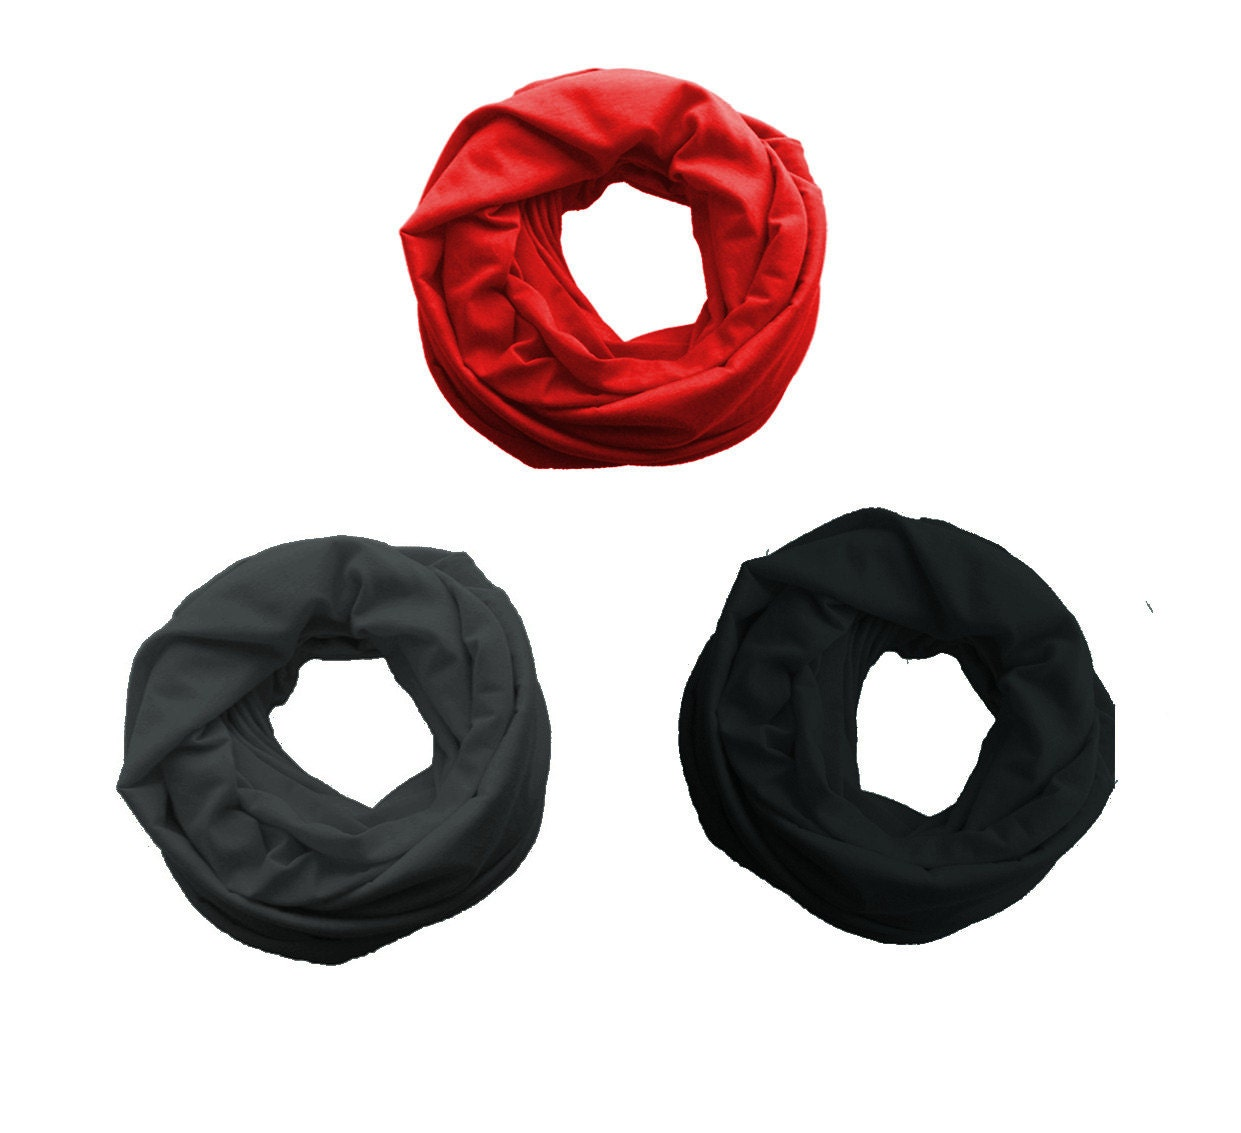 TODDLER Infinity Scarf, Kids Loop Jersey Scarf, 2-6 years old Baby circle scarf, black, charcoal gray, red - IskraAccessories